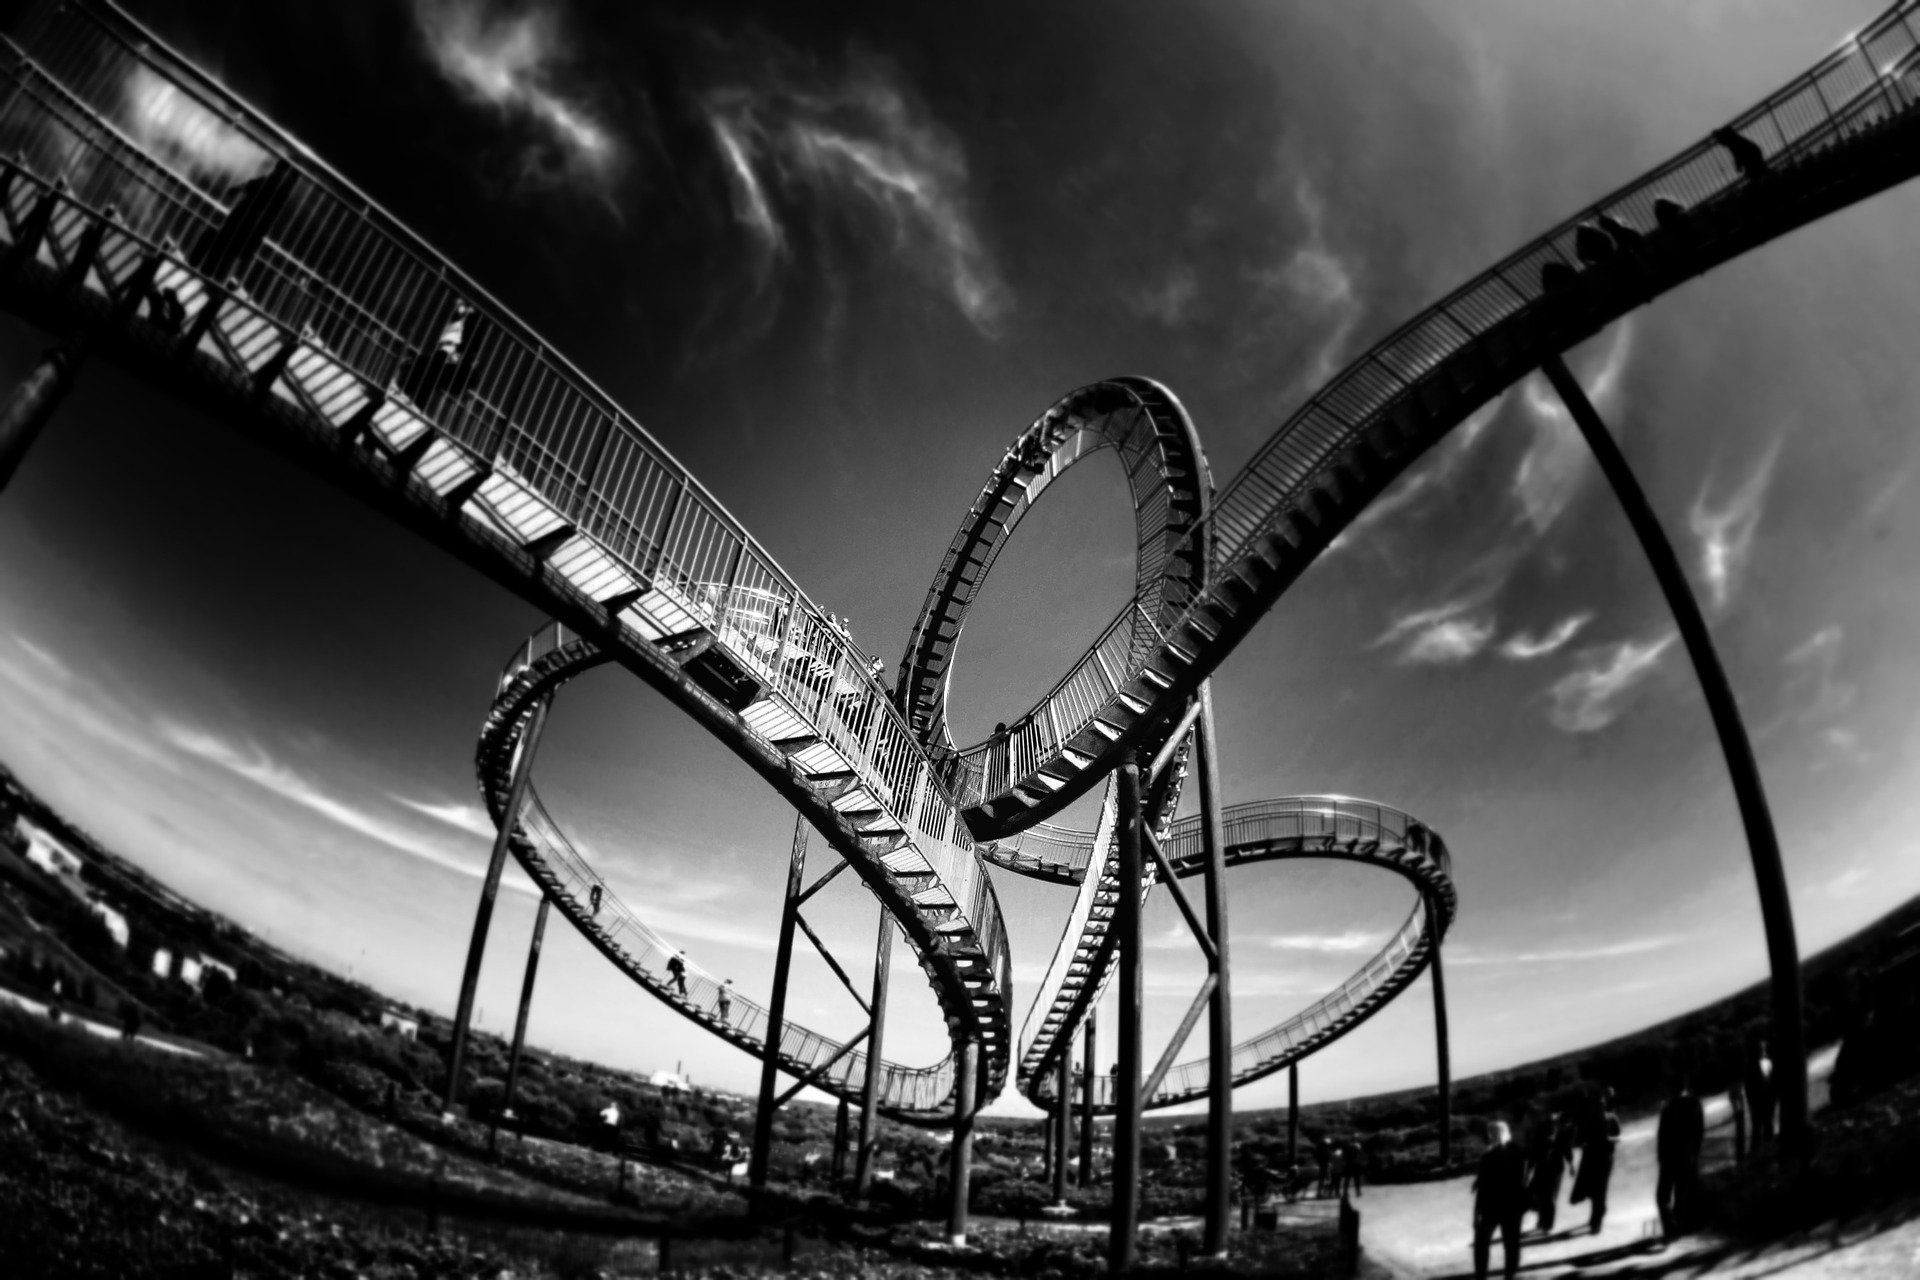 rollercoaster-801833_1920